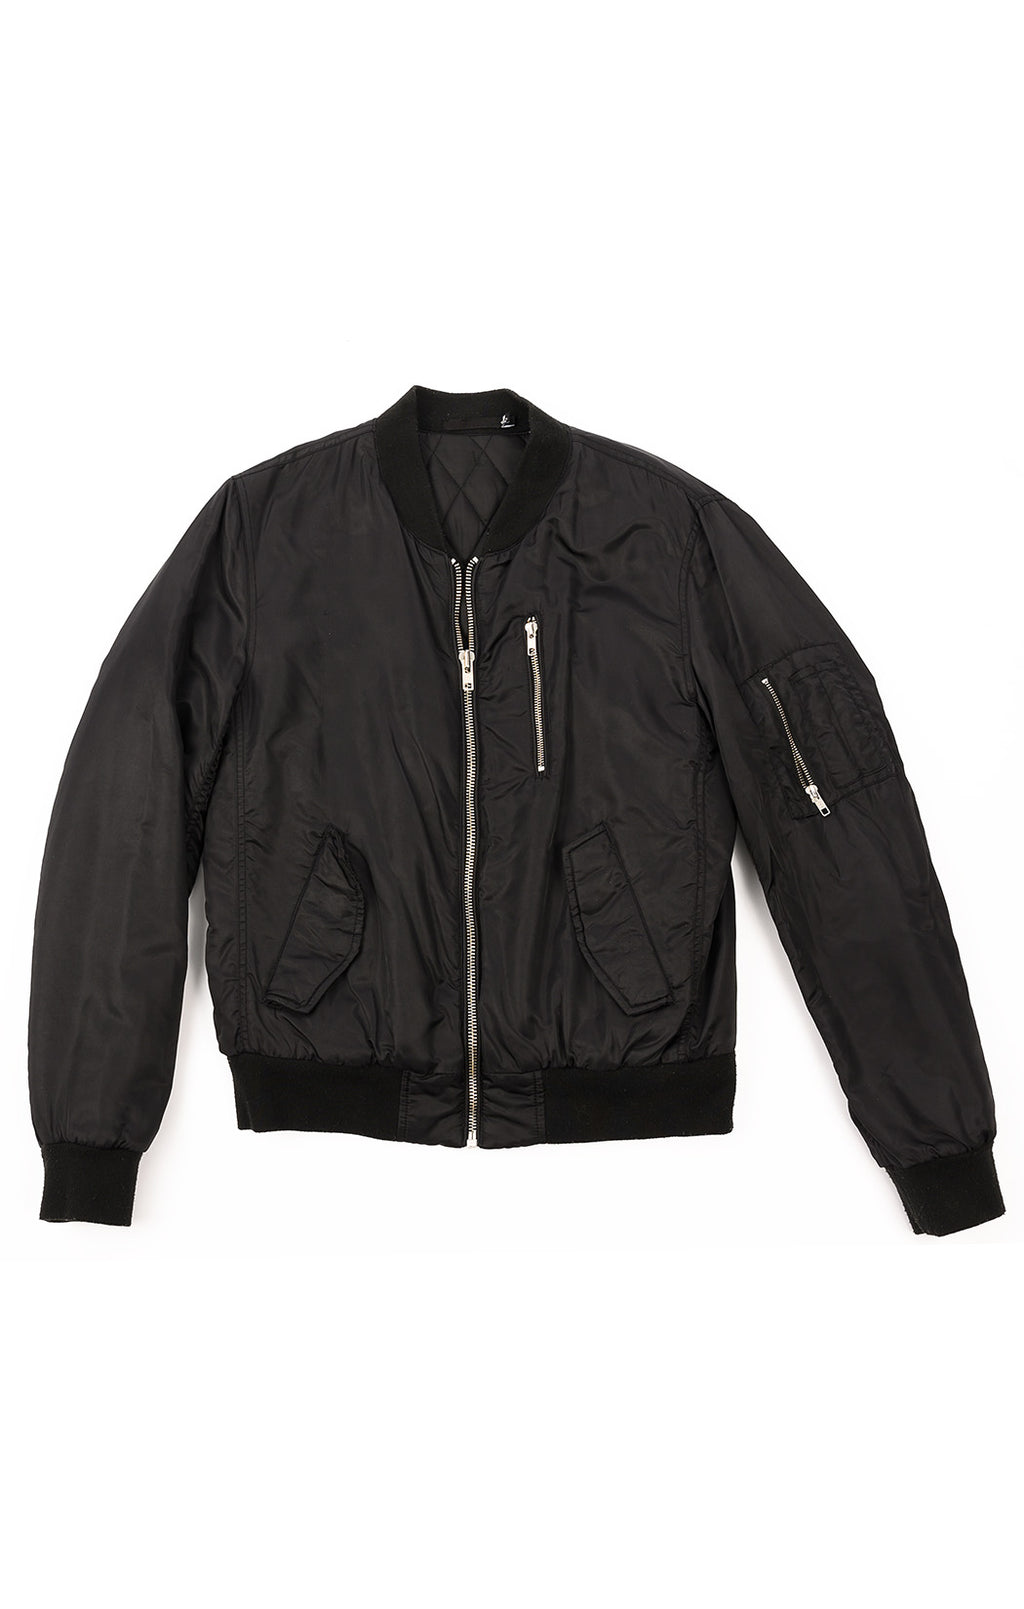 Front view of BLK DNM Jacket Size: Medium